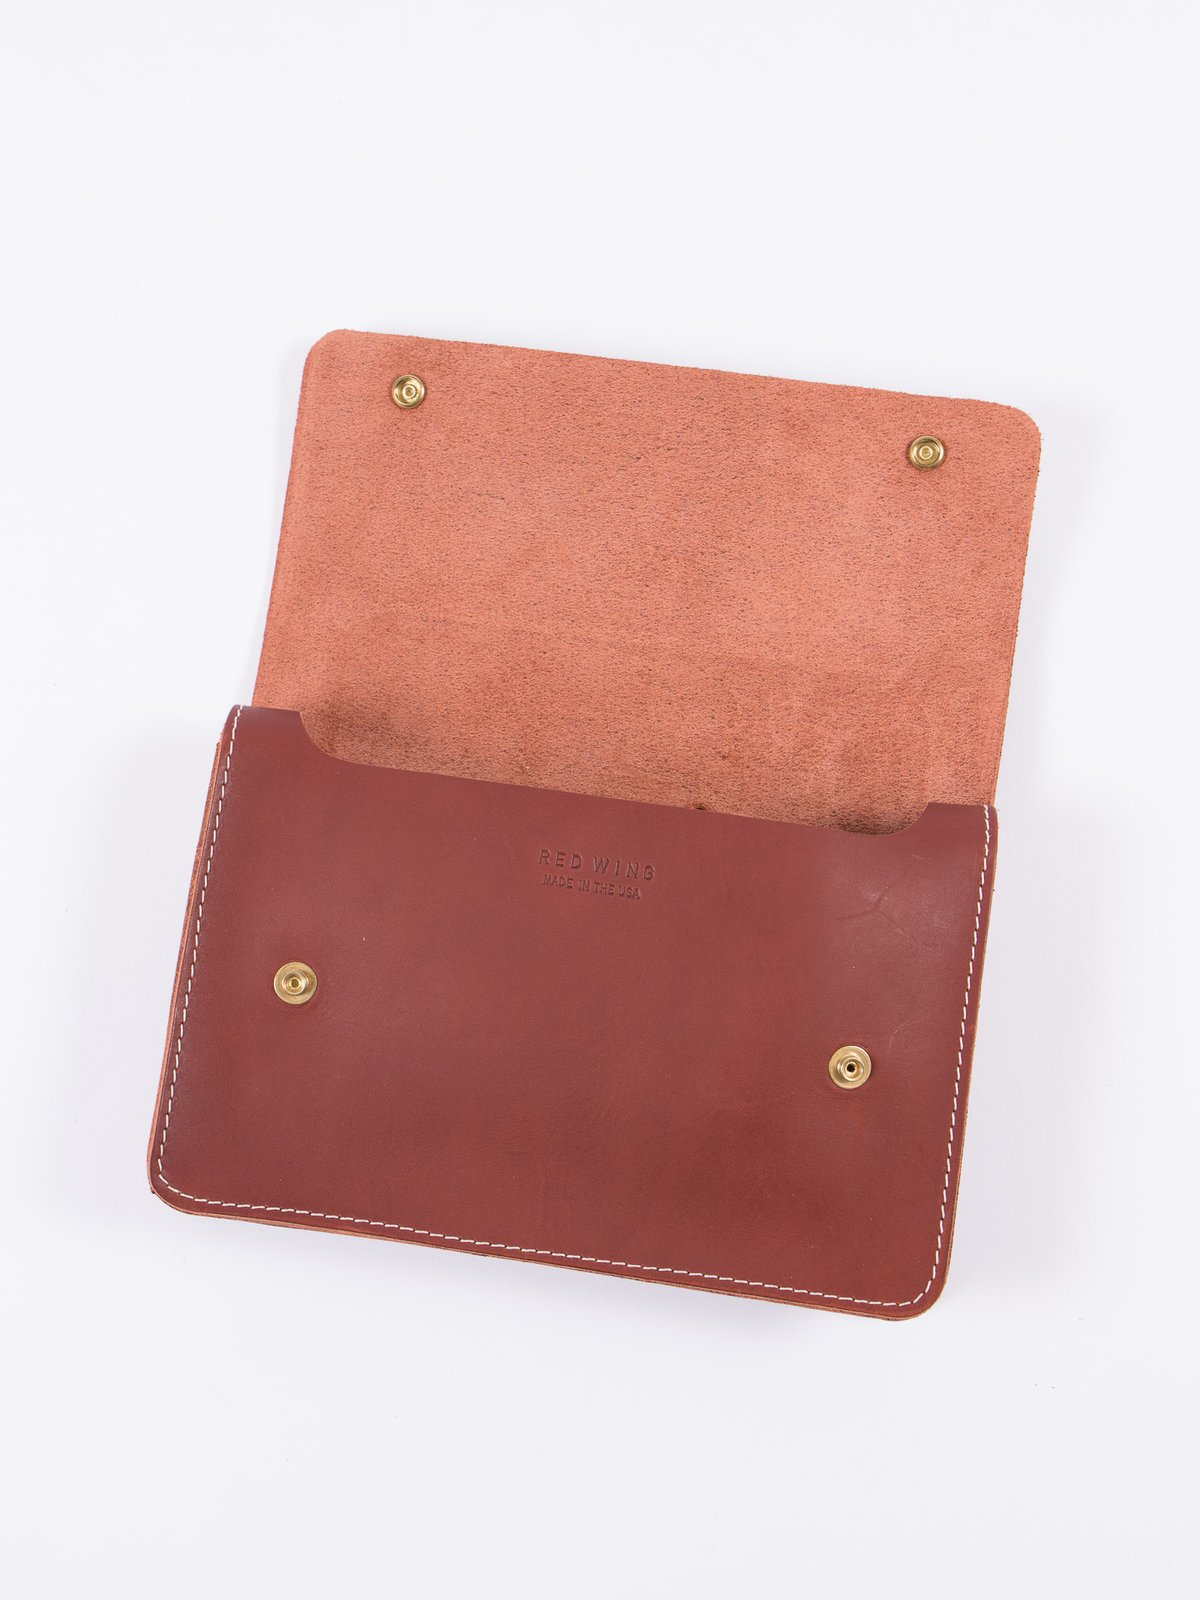 Leather Travel Care Kit - Image 3